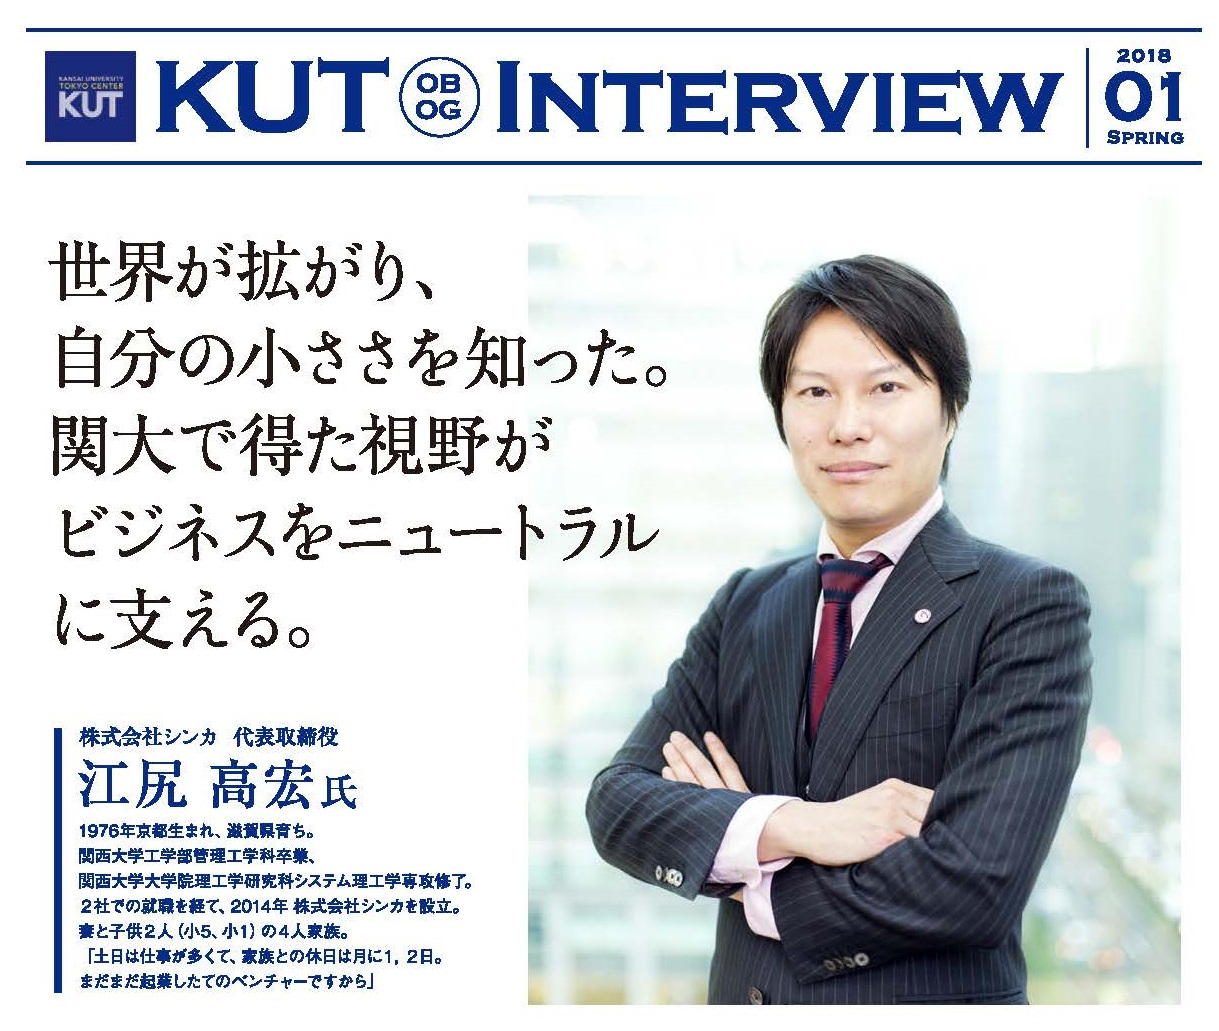 <KUT INTERVIEW> 首都圏で活躍する卒業生をご紹介します